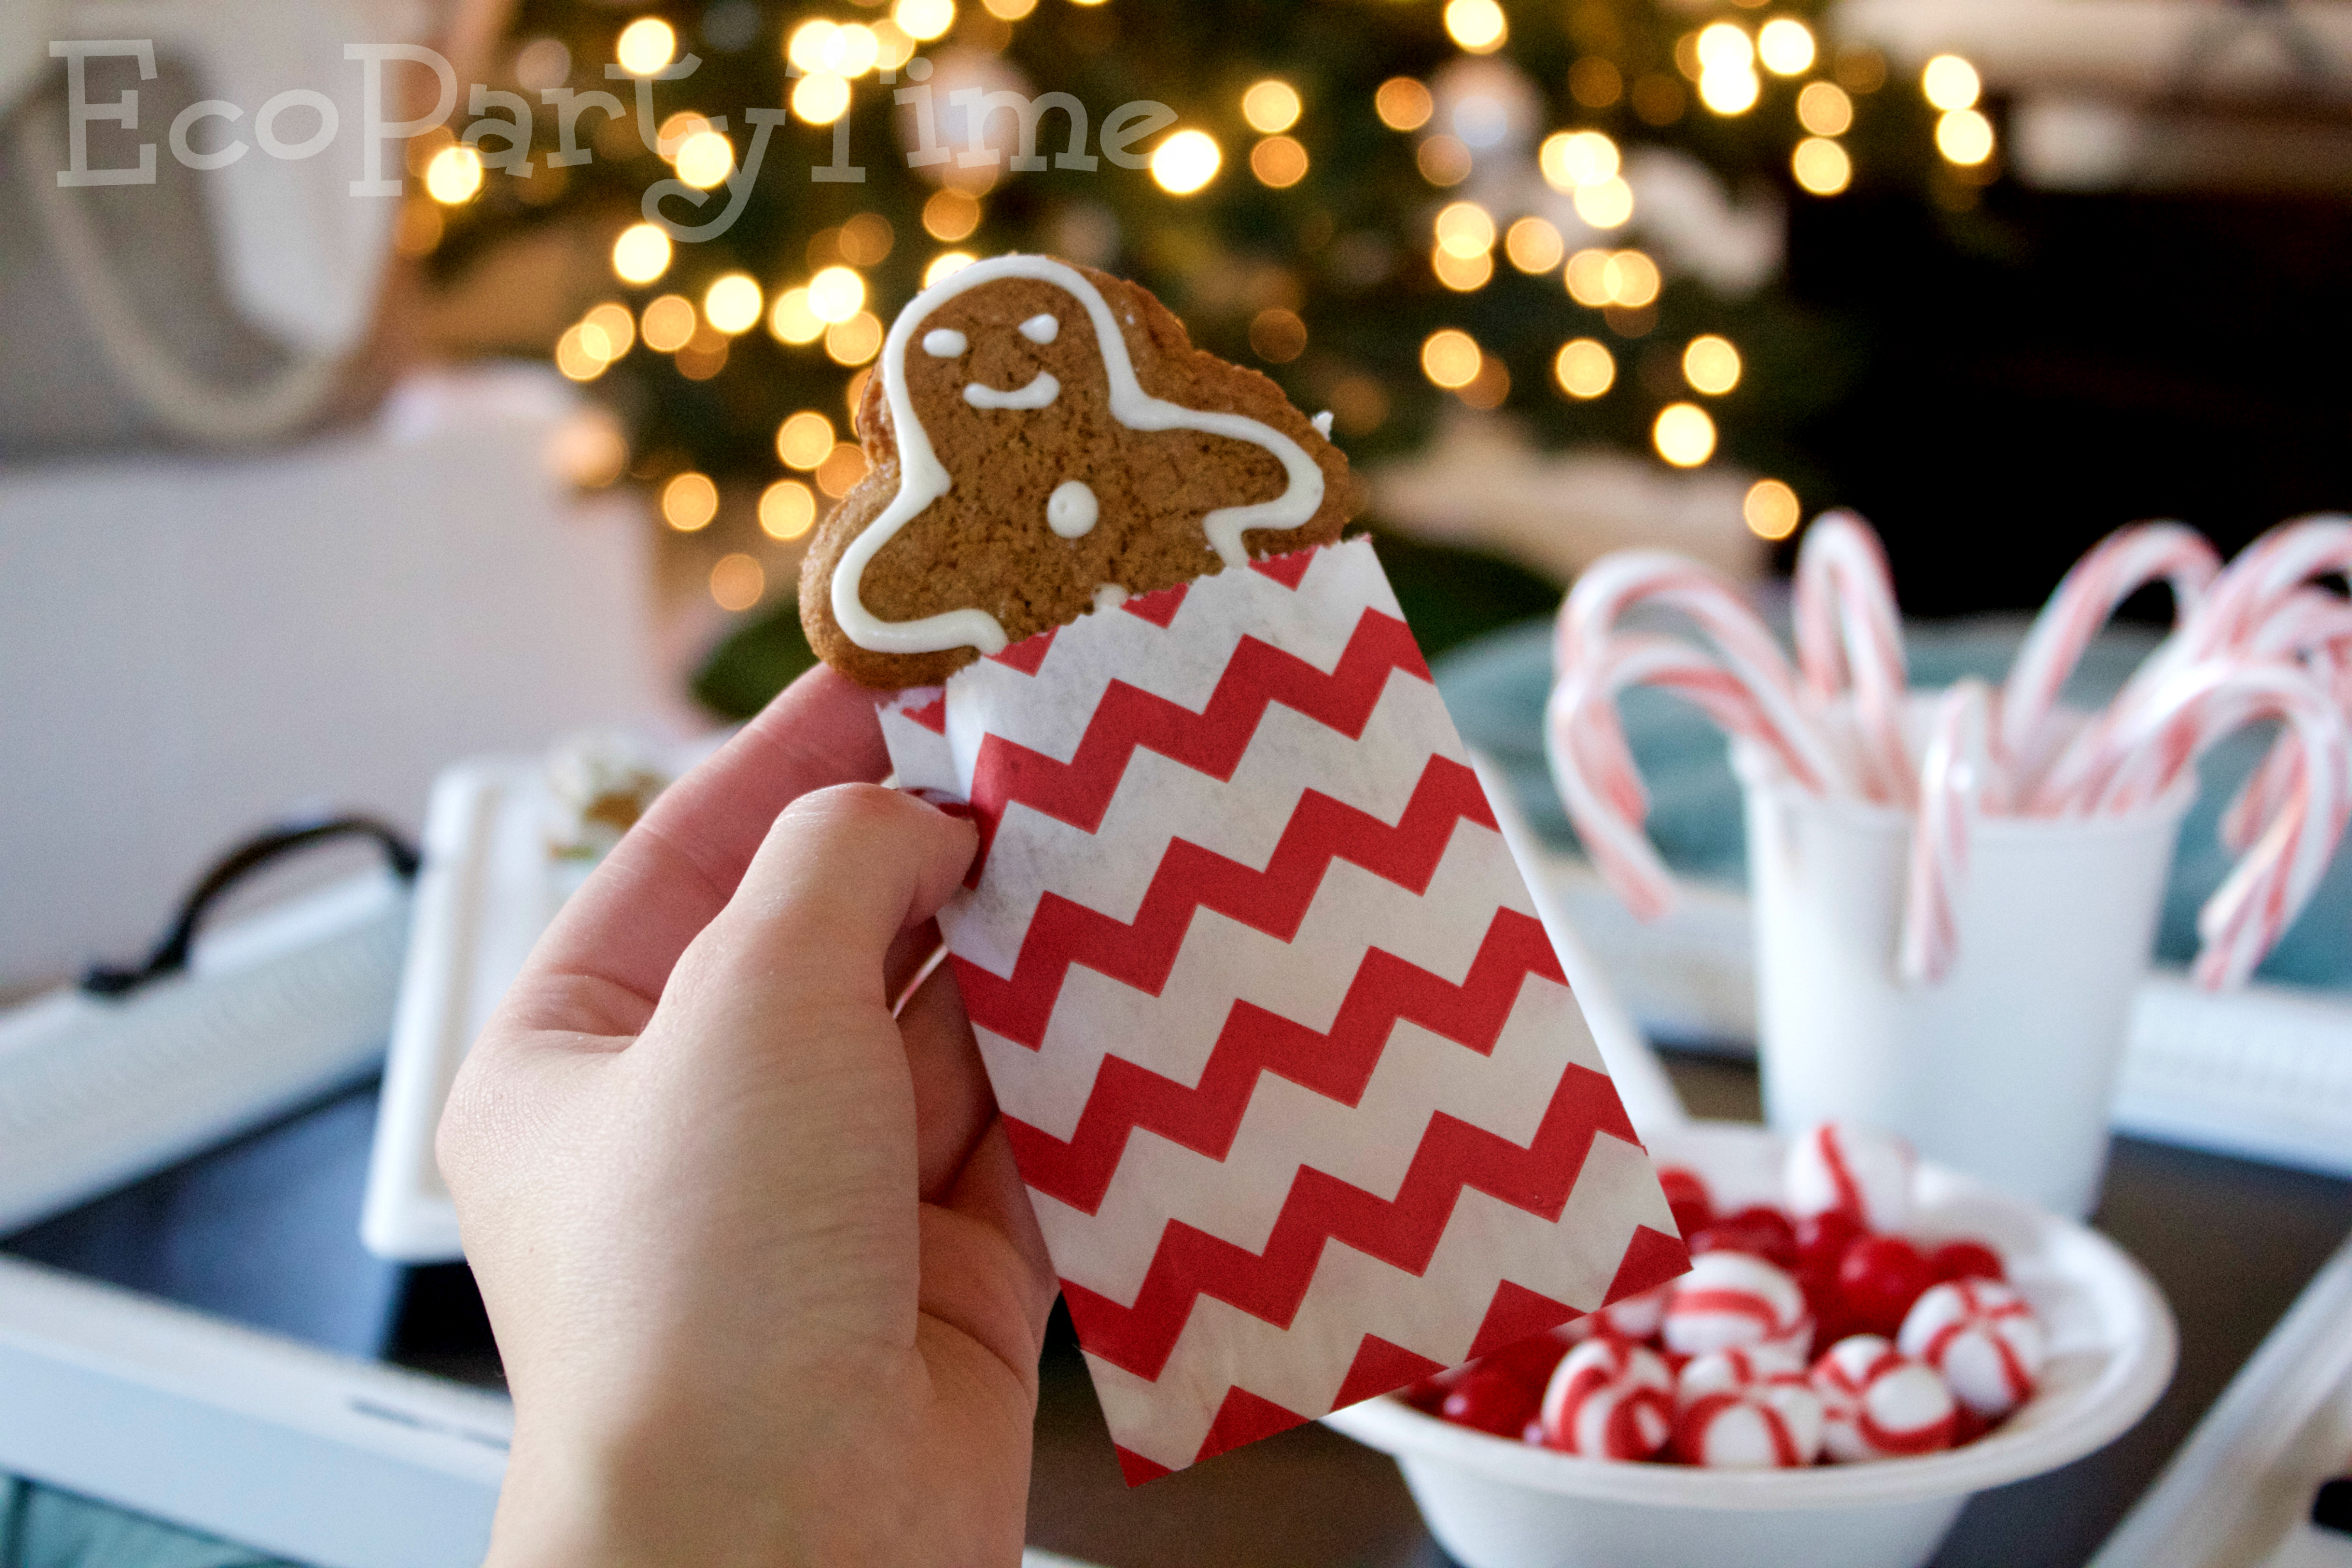 Ecopartytime: Gingerbread House Decorating Party